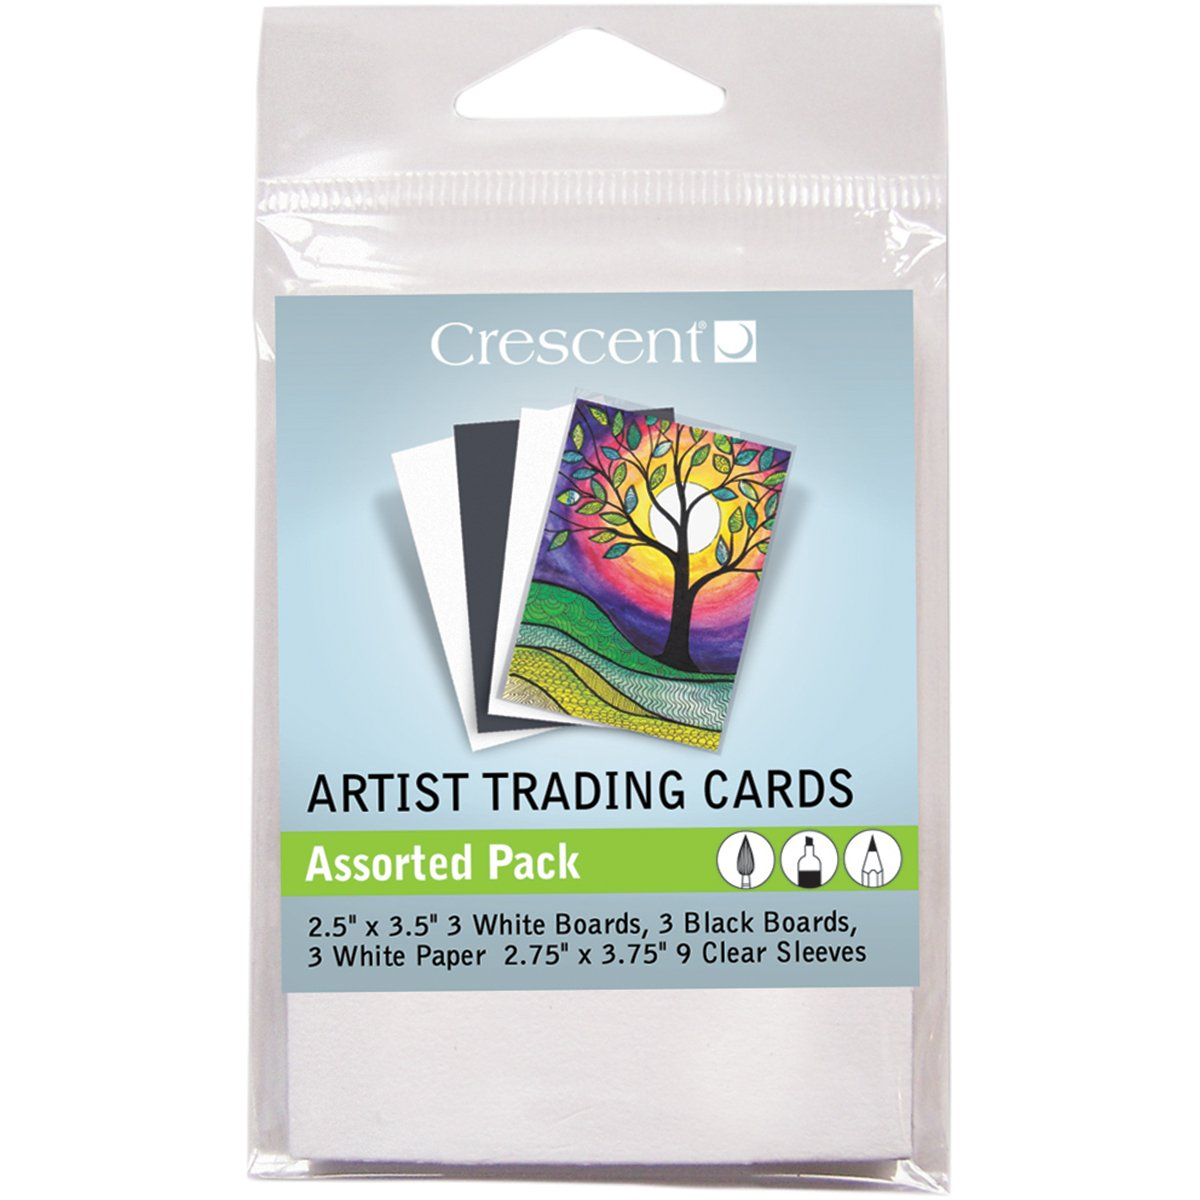 Crescent Cardboard Artist Assorted Trading Cards (18 Pack), 18'